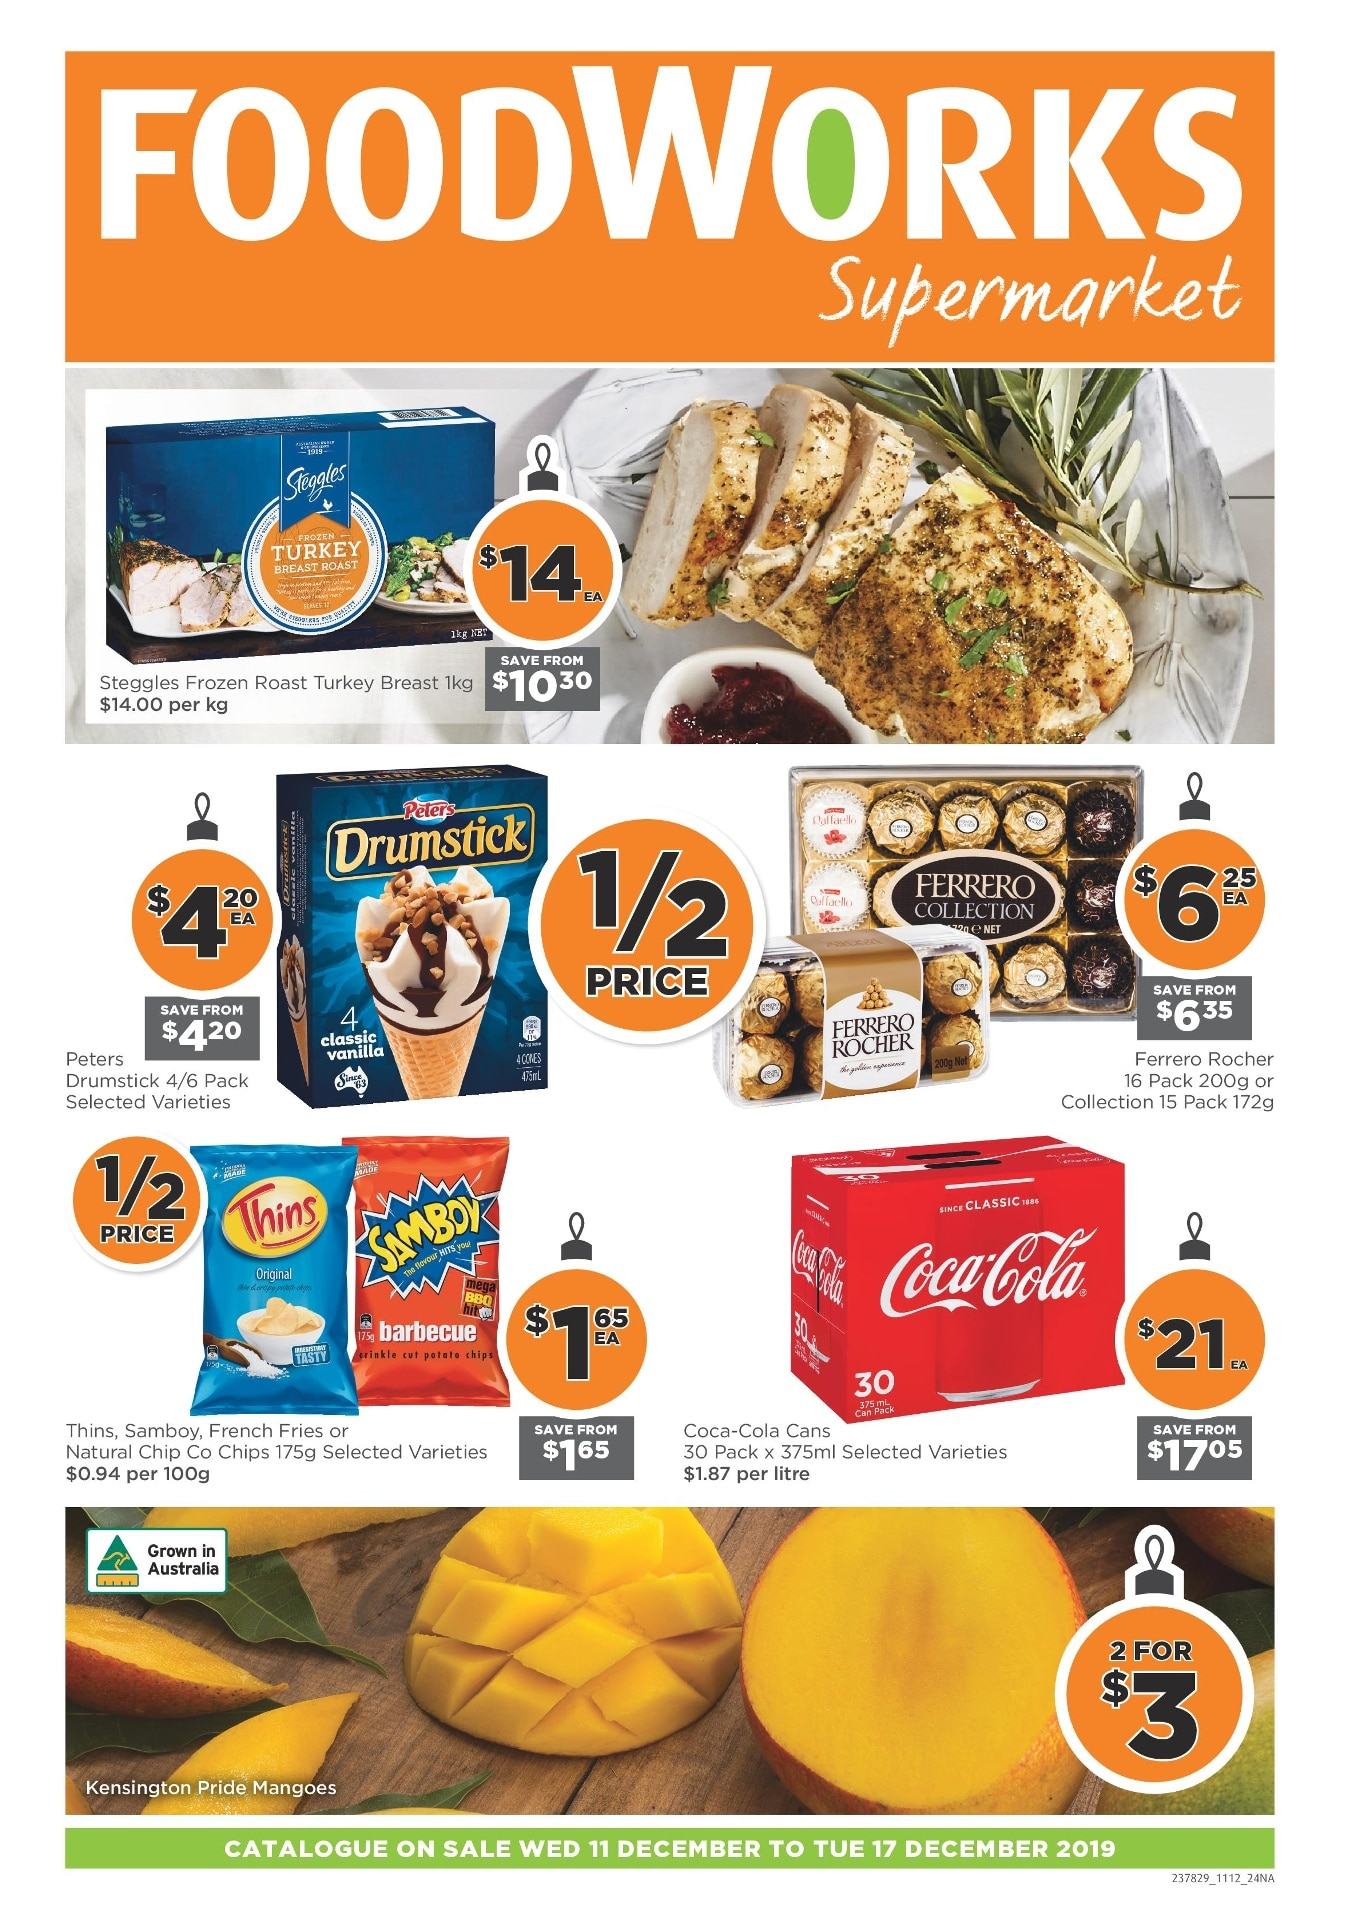 FoodWorks Catalogue 11 December - 17 December 2019